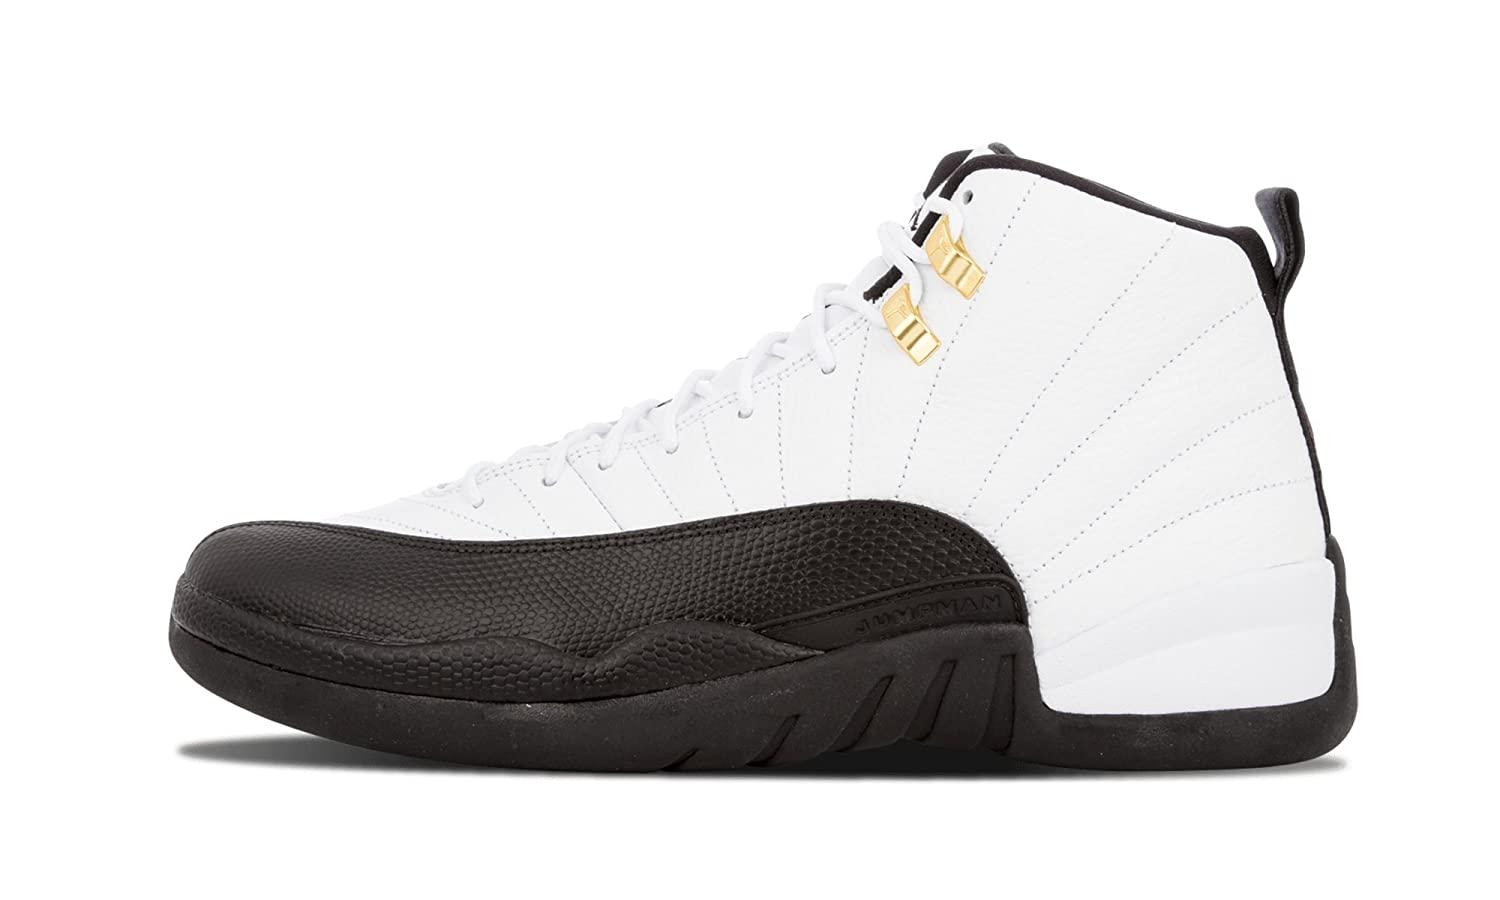 fd6805d0802 Amazon.com | Jordan Nike Air 12 Retro Taxi (130690-125) | Shoes